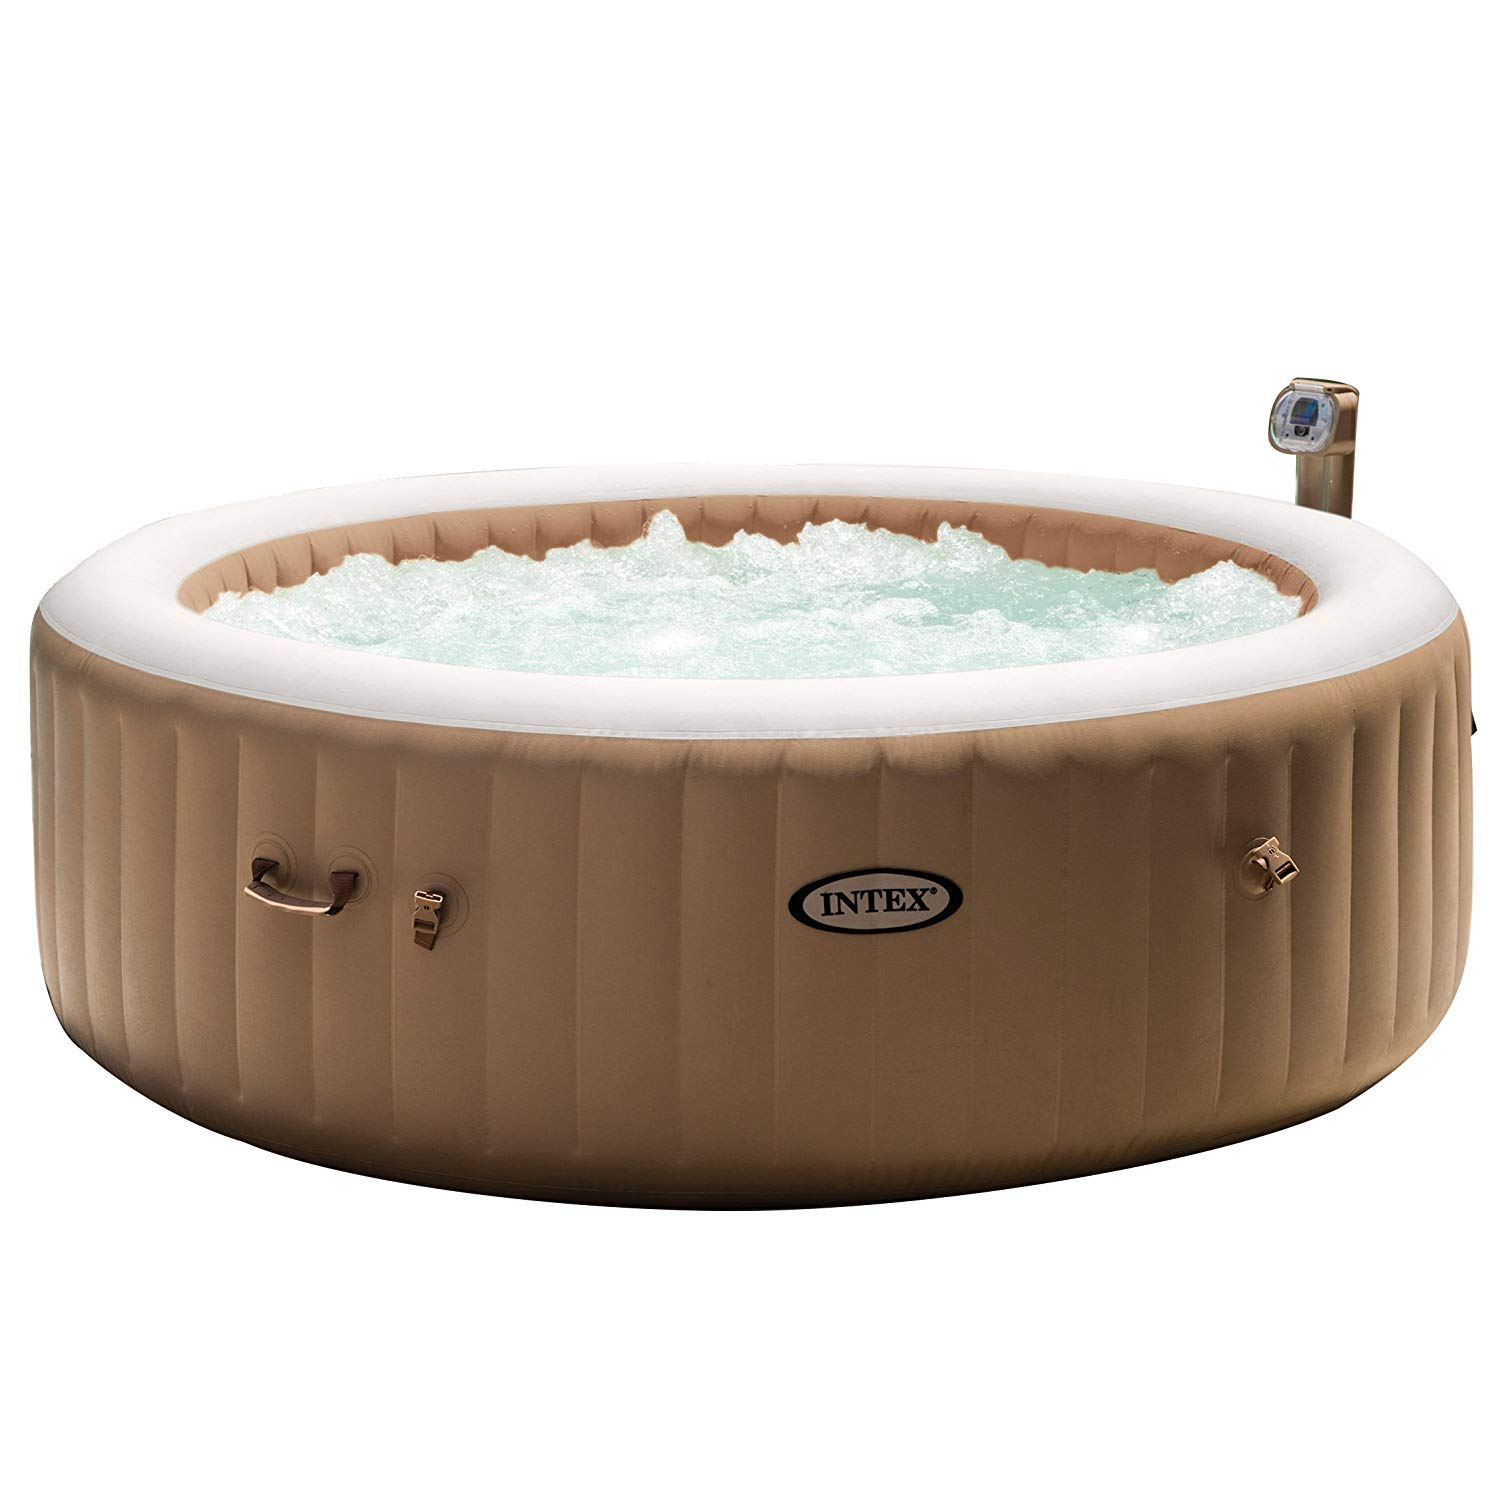 Intex 85in PureSpa Portable Plug and Play Hot Tub Bubble Massage Spa Set